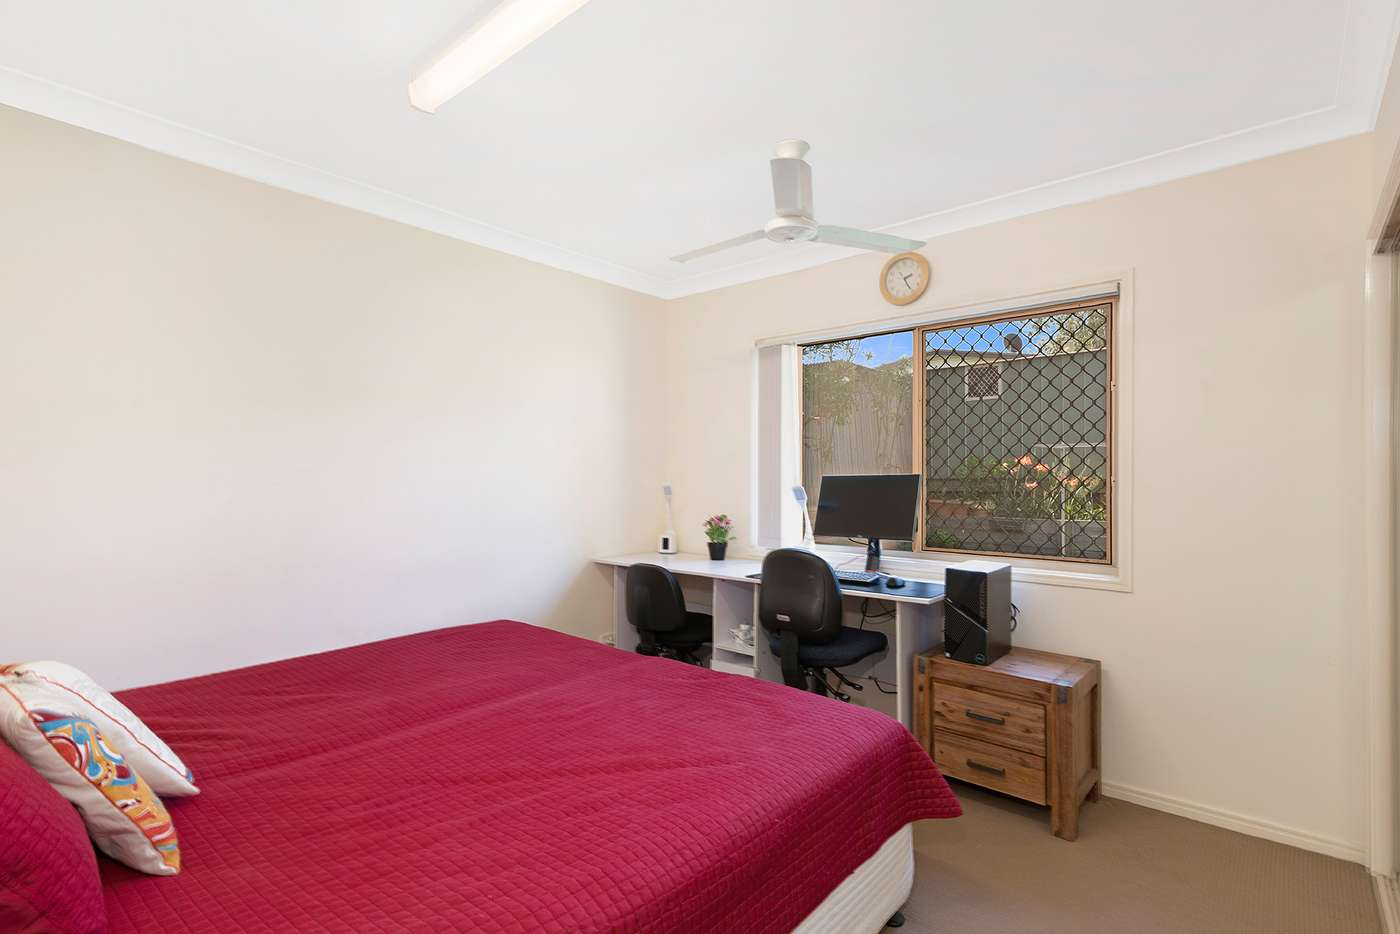 Sixth view of Homely house listing, 48 Baroda Street, Coopers Plains QLD 4108